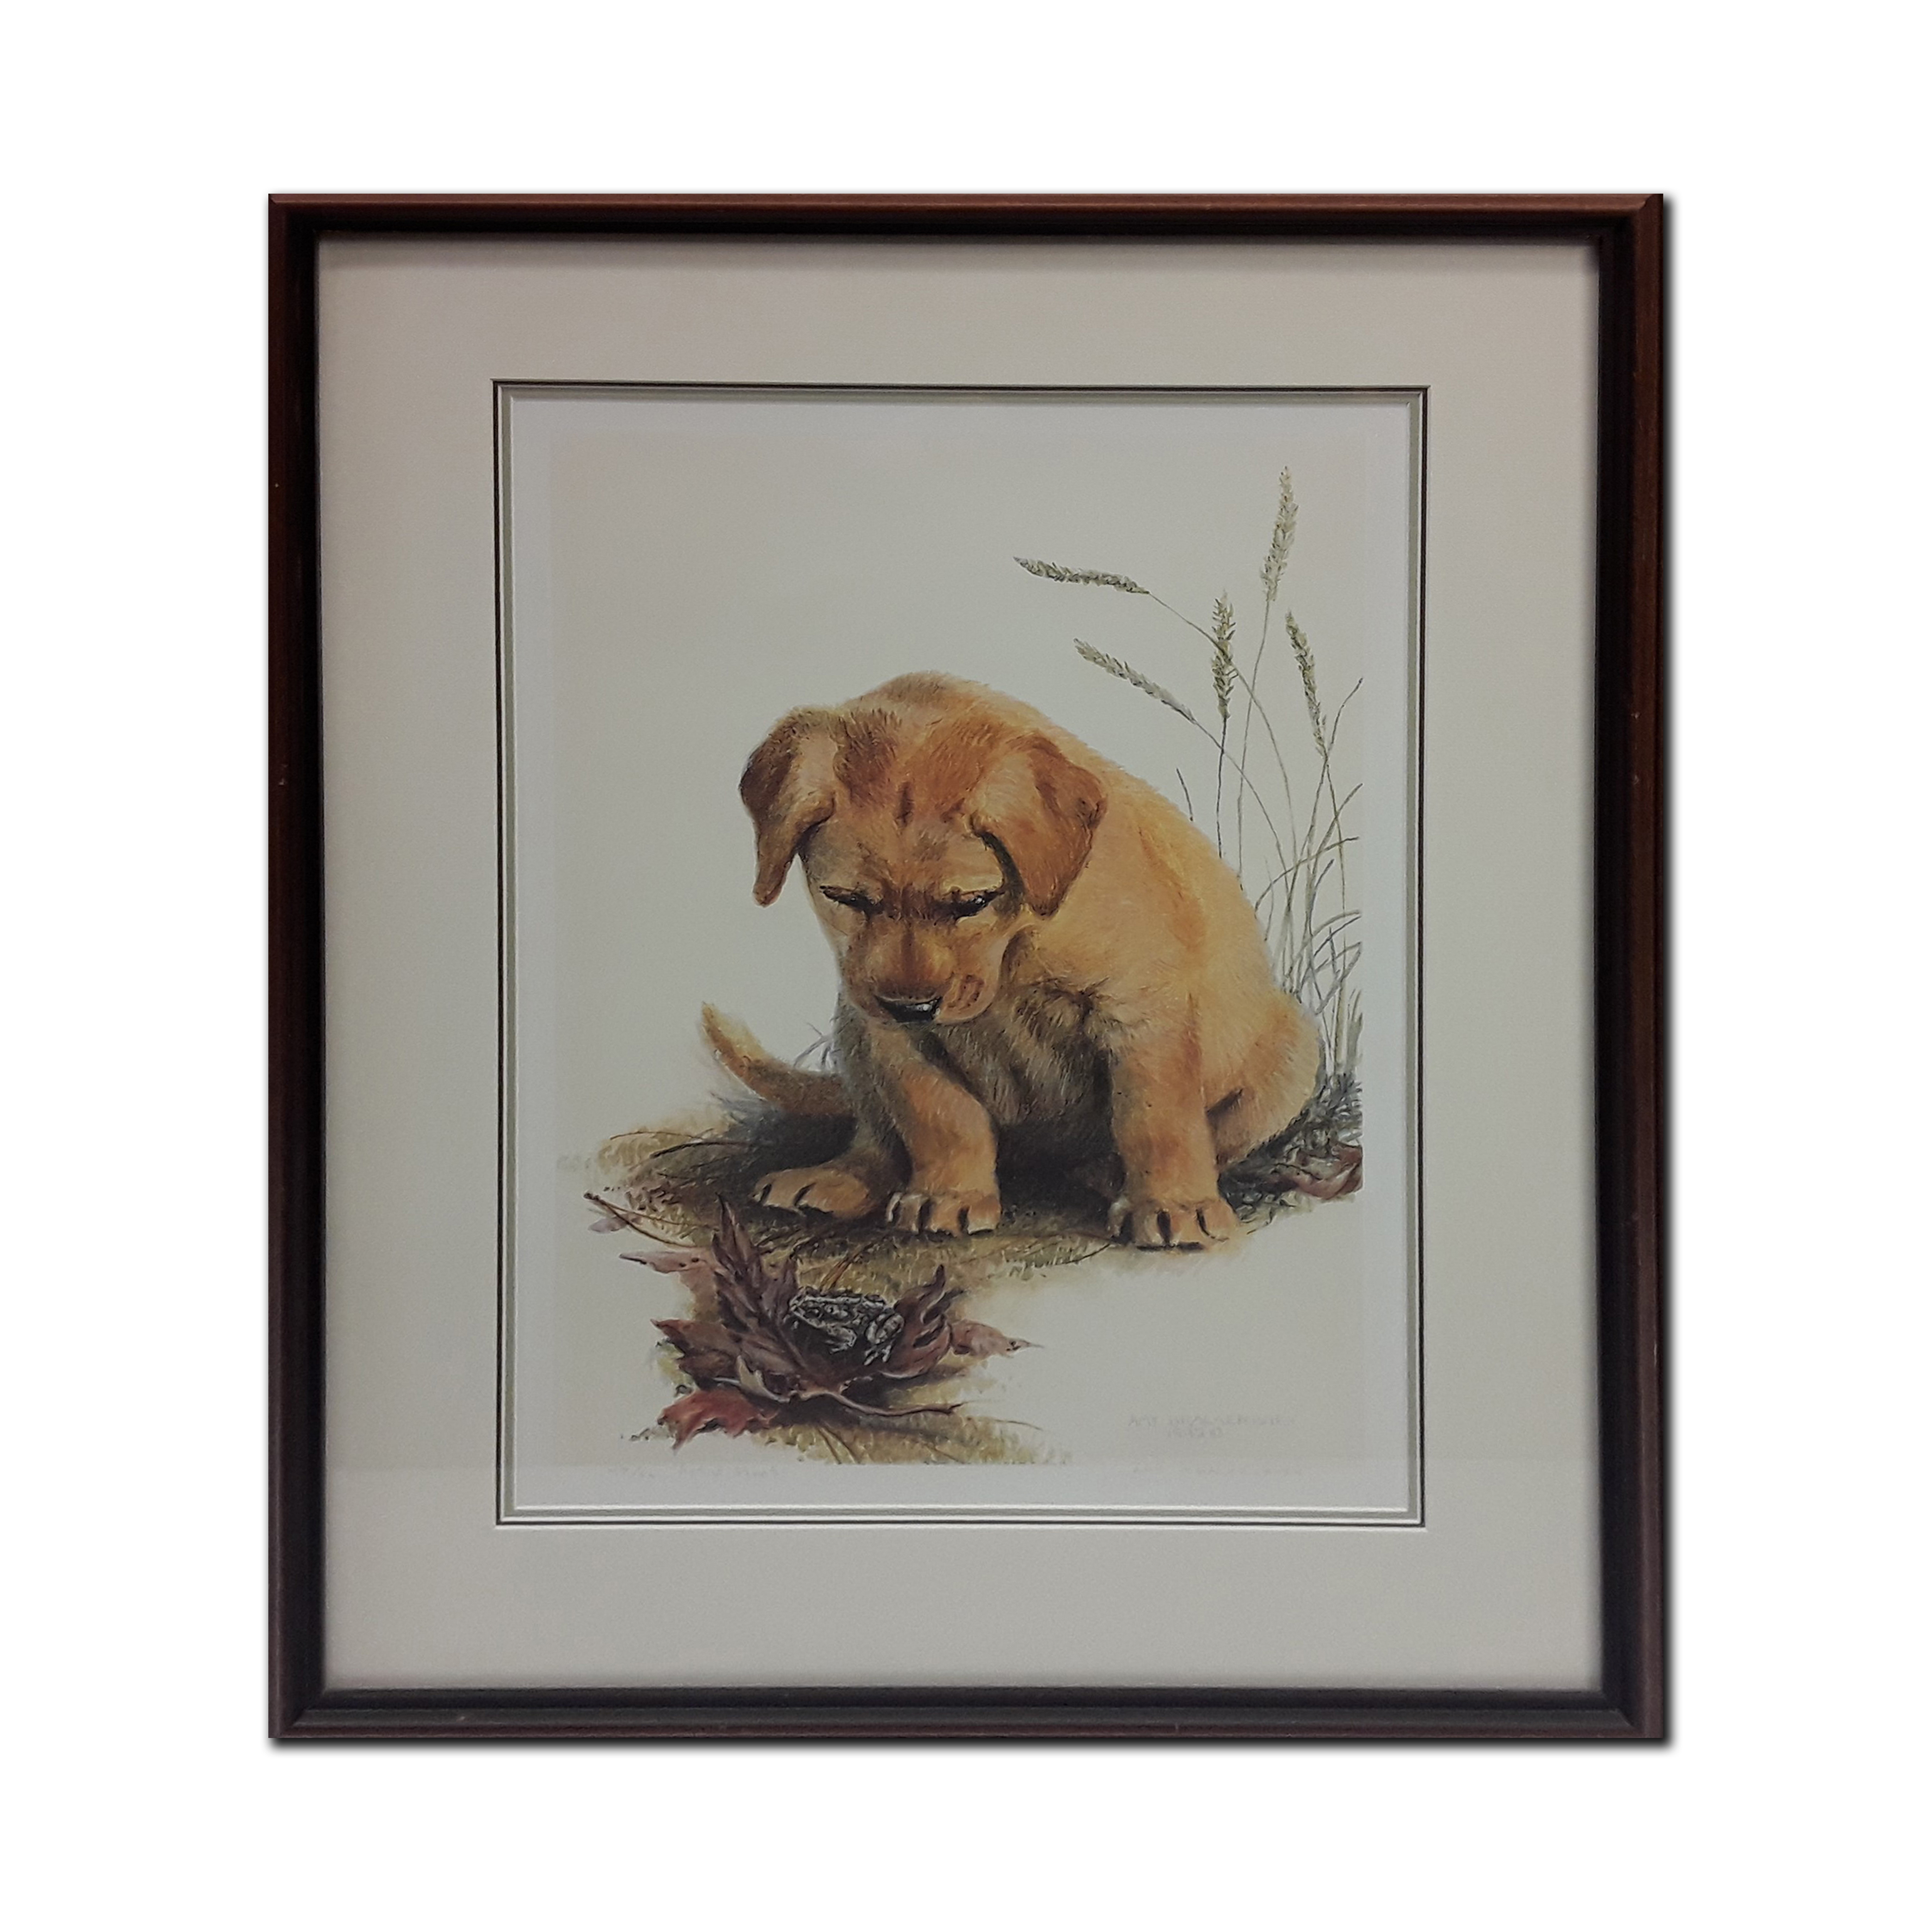 """Amy Brackenbury's """"Toadally Captivated"""" Limited Edition Artist Proof Framed Print"""